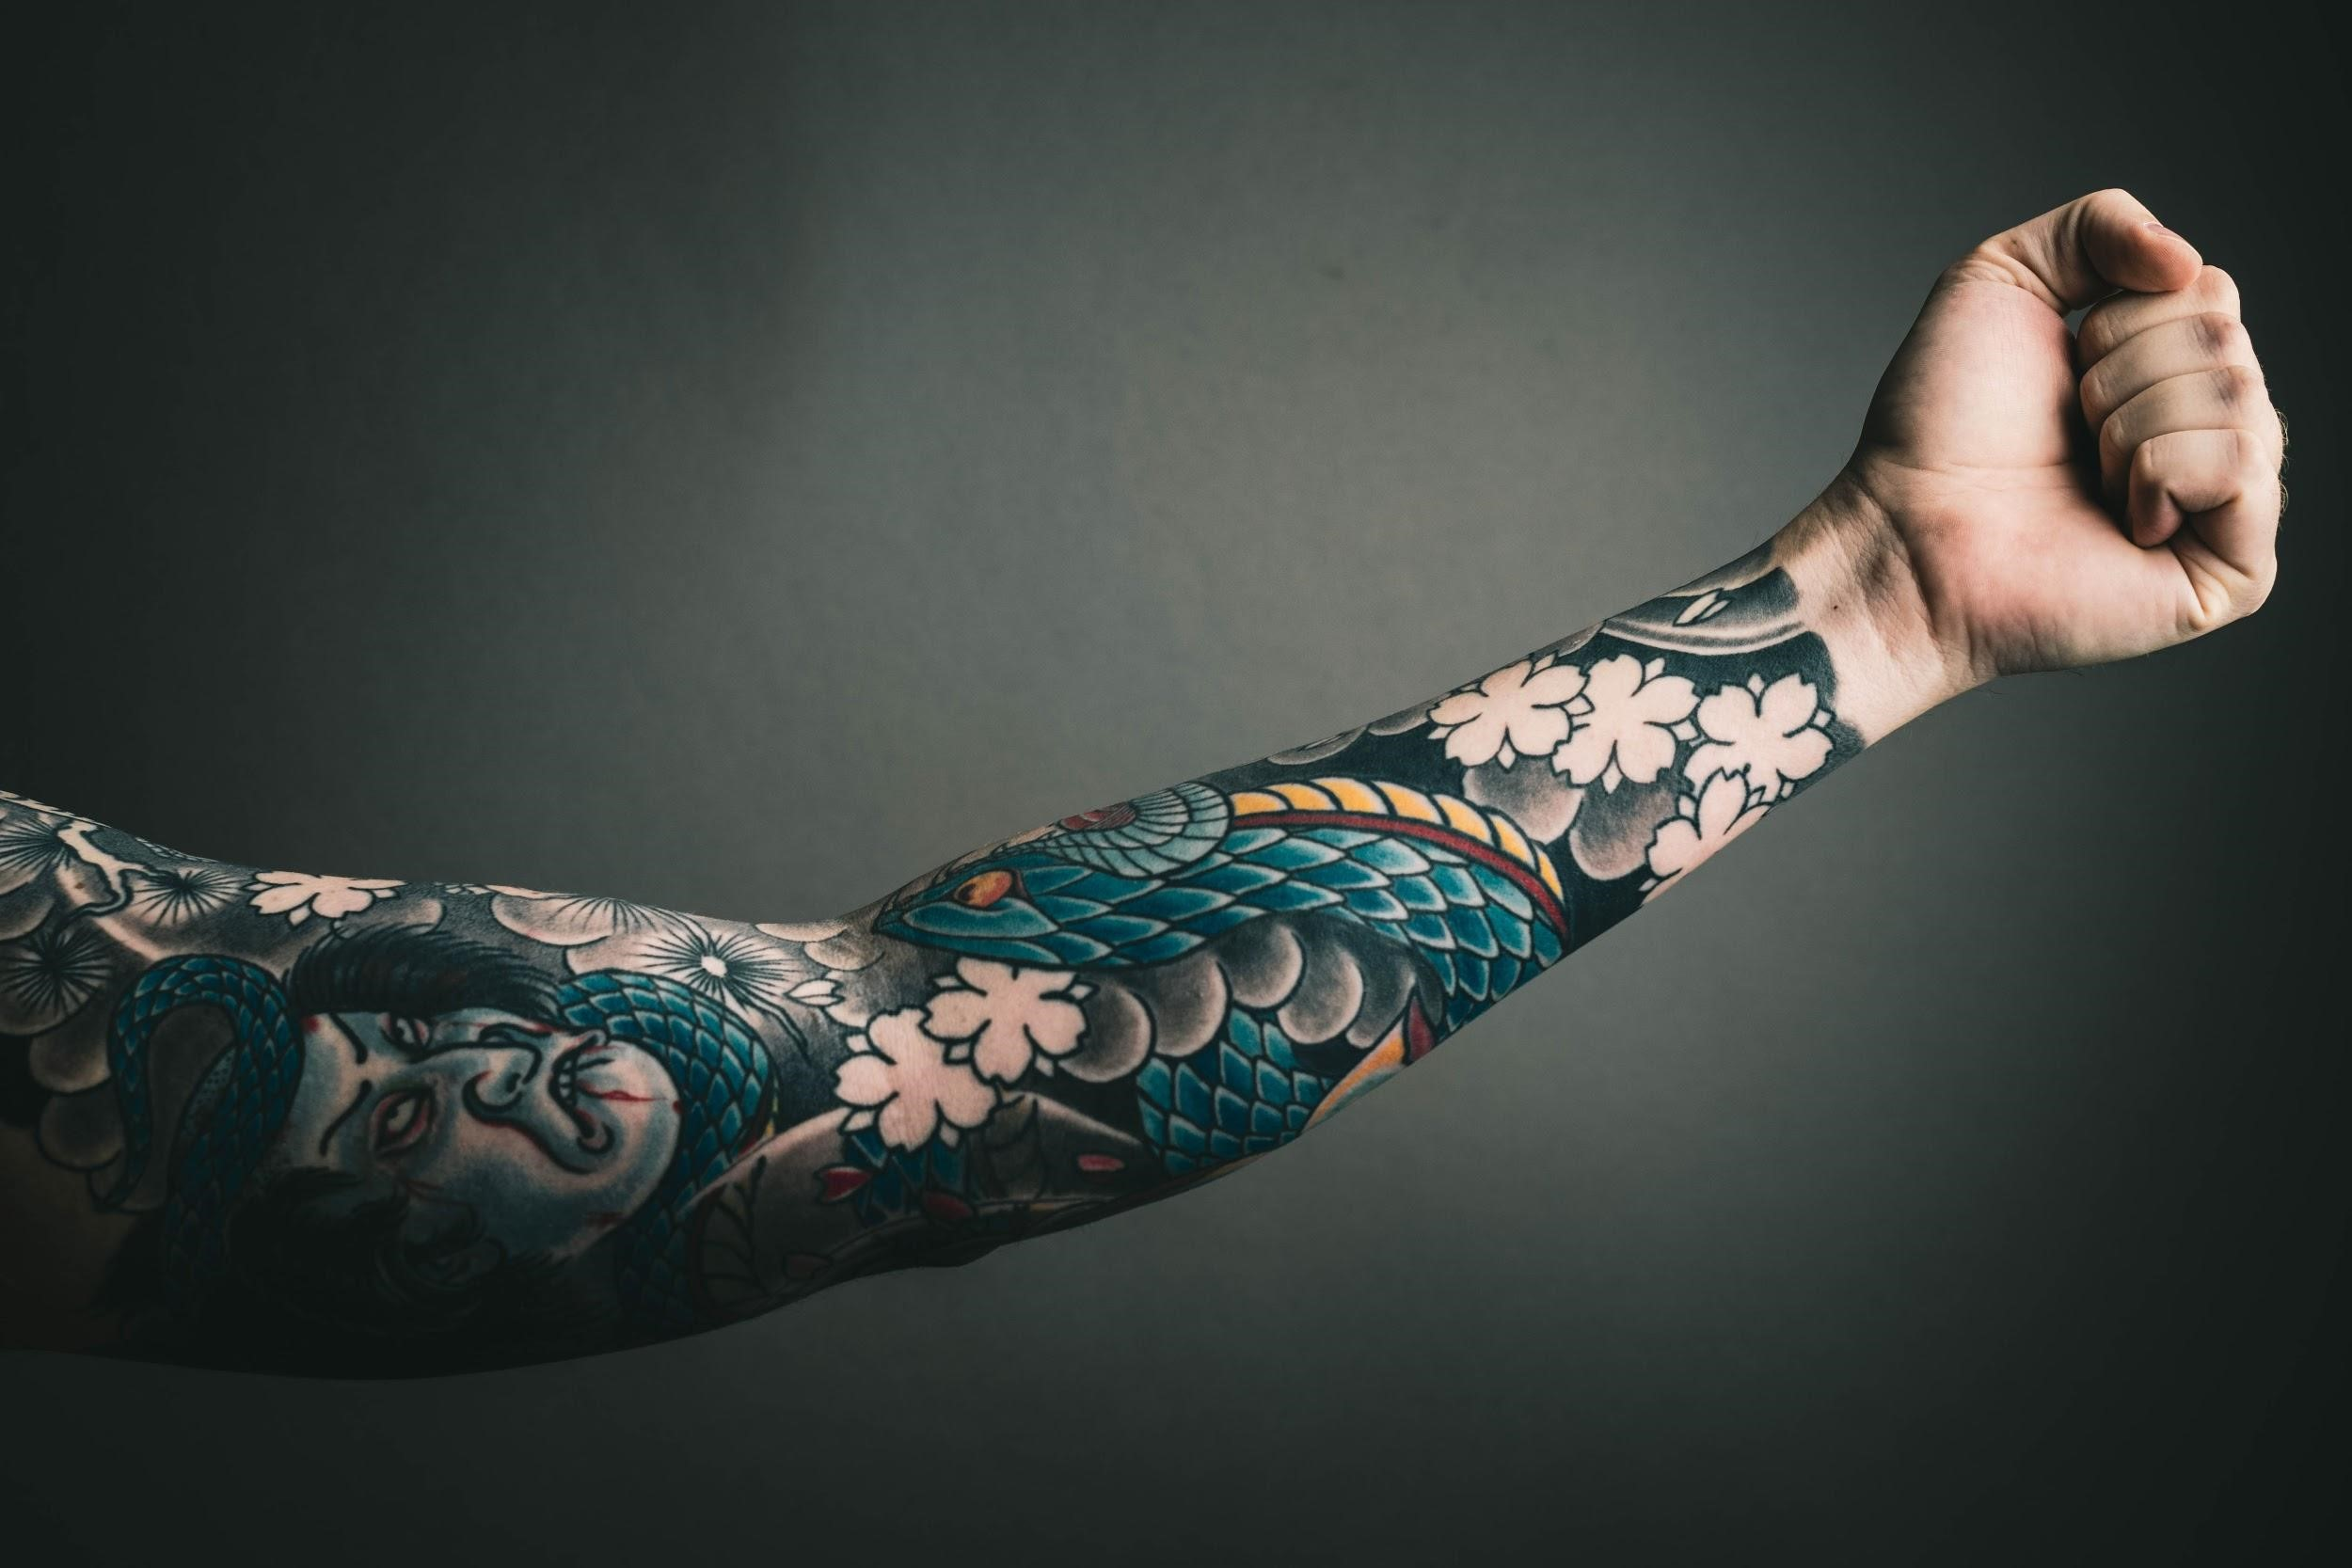 2020 tattoo trends - The first of 2020 tattoo trends is color